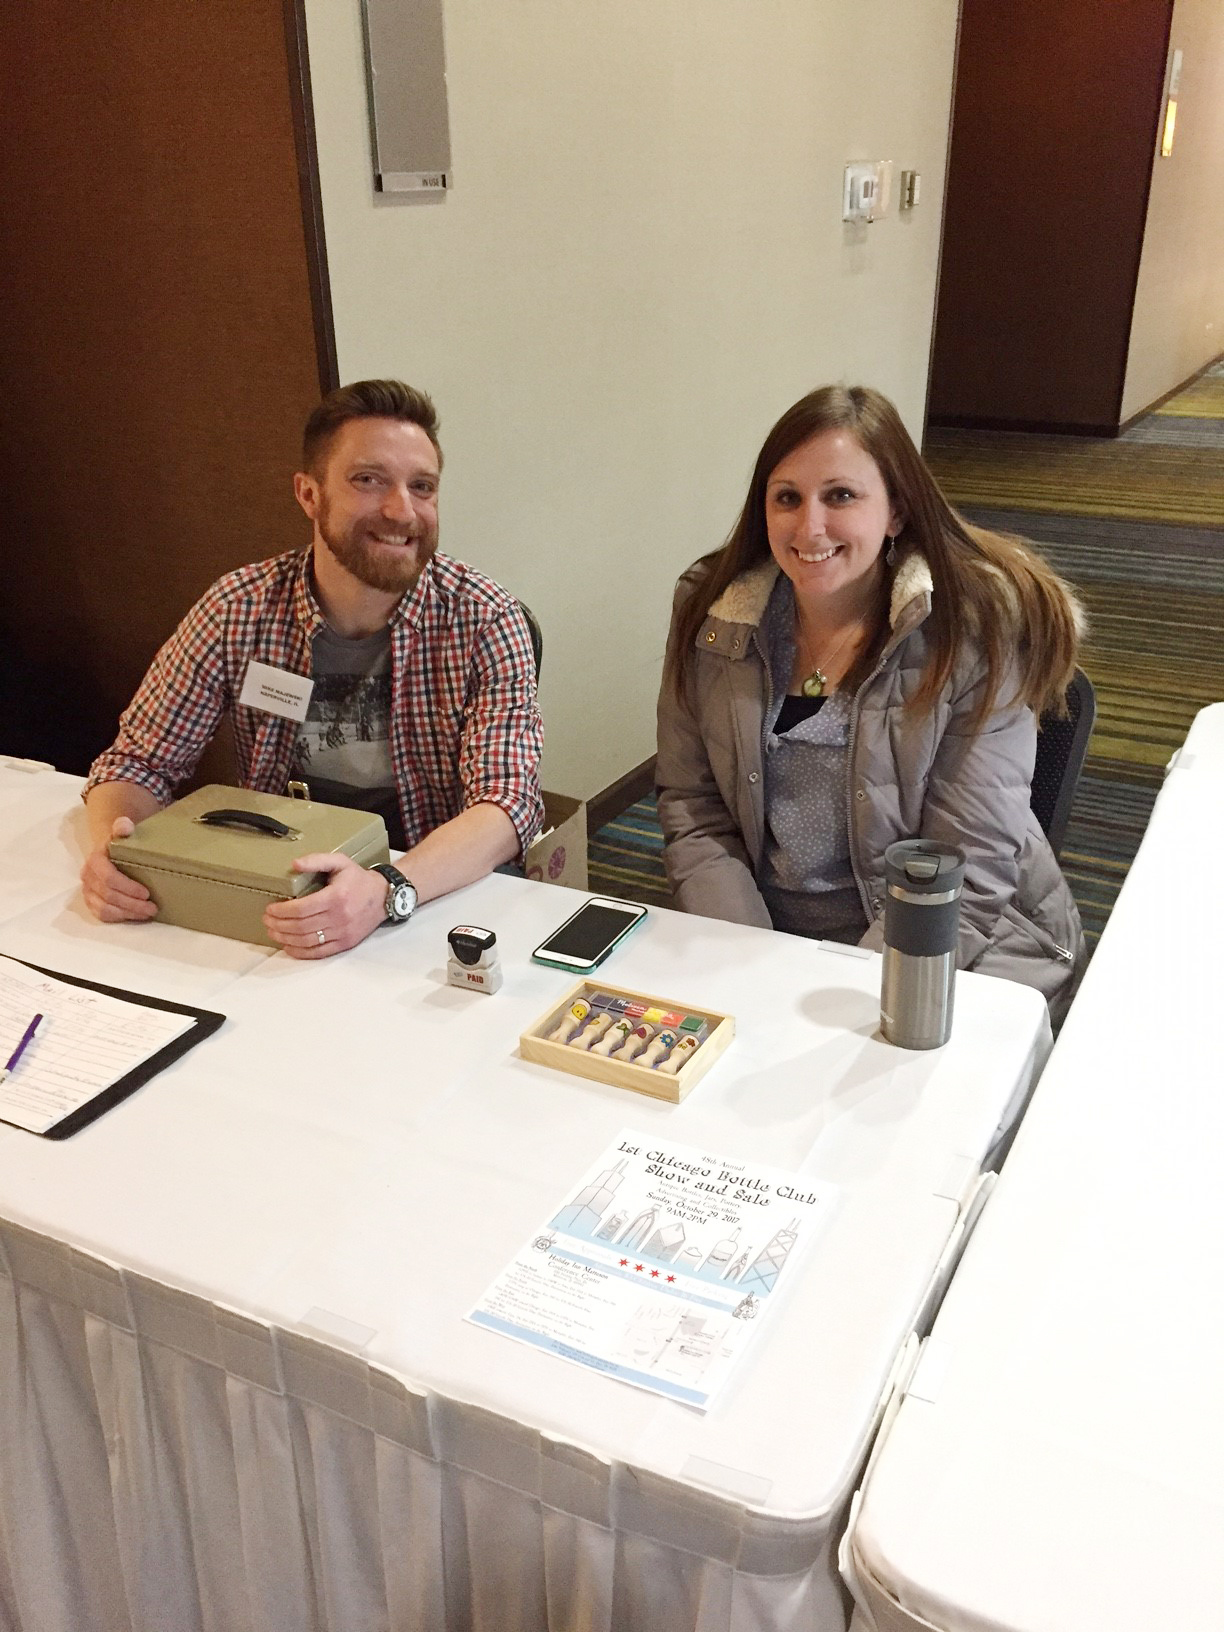 Welcoming table with Mike and Melissa Majewski